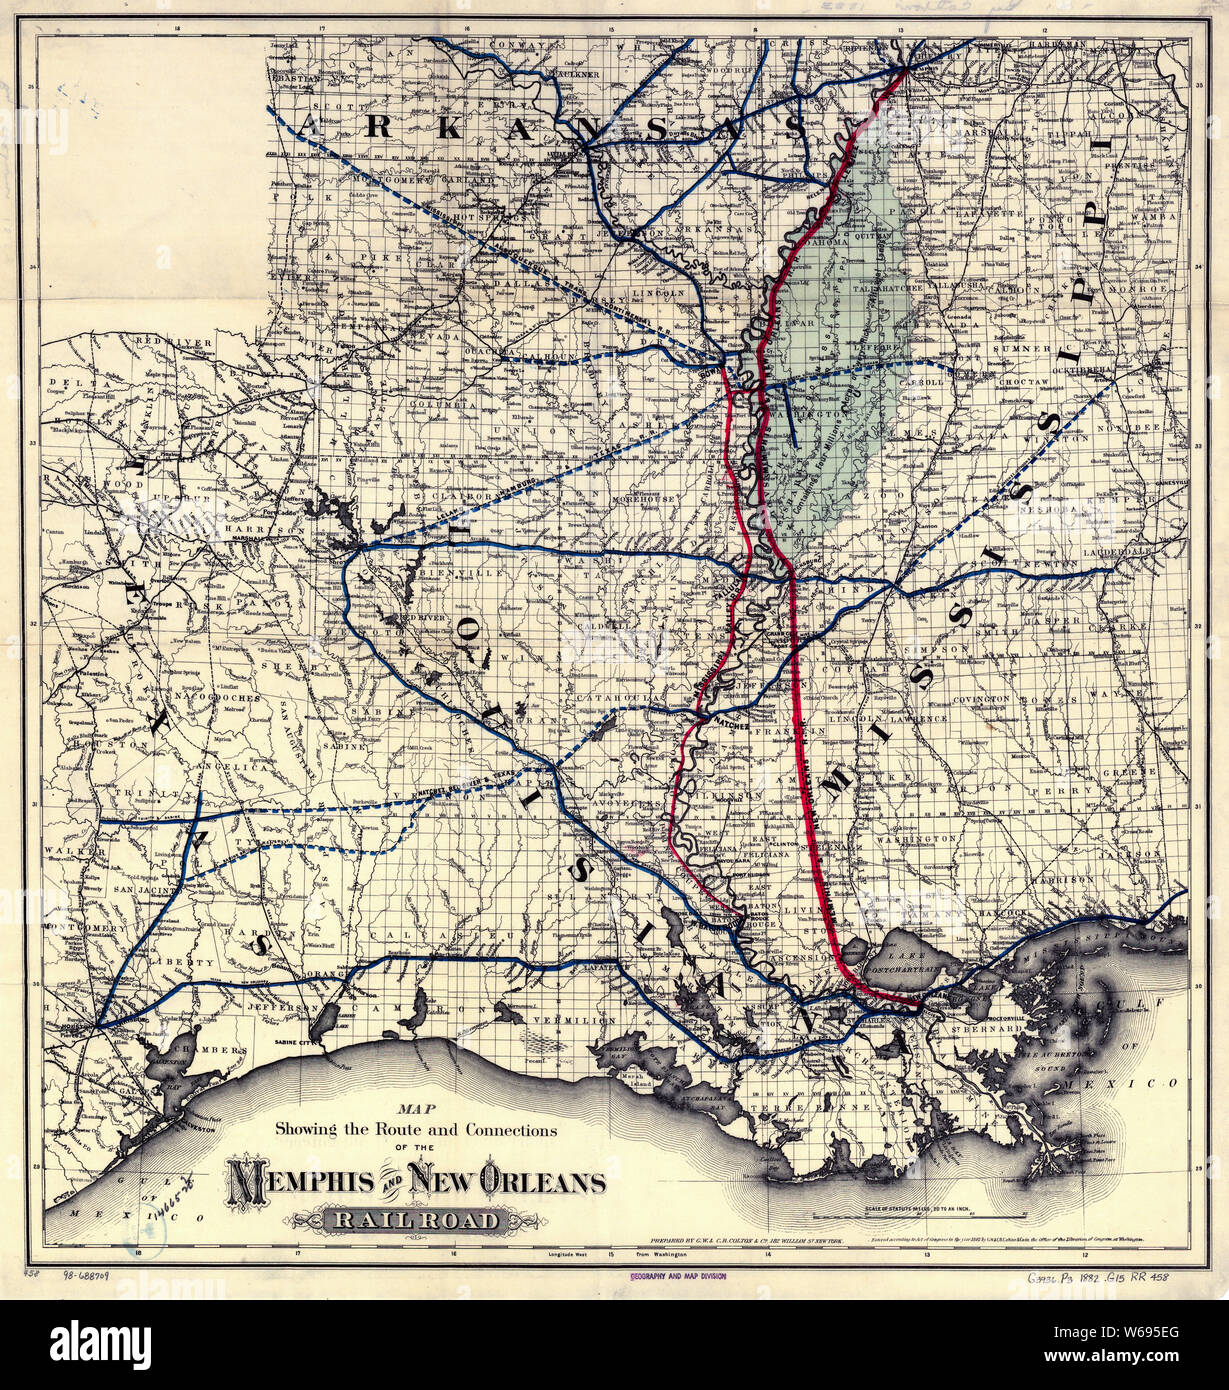 Train Transportation Stock Photos & Train Transportation ... on shreveport map, fort thomas map, cedartown map, waycross map, hopkinsville map, fairmont map, tell city map, mcpherson map, greencastle map, livonia map, clayton map, bennettsville map, villa rica map, elizabeth map, lafayette map, valparaiso map, oolitic map, scottsburg in map, lake charles map, london map,